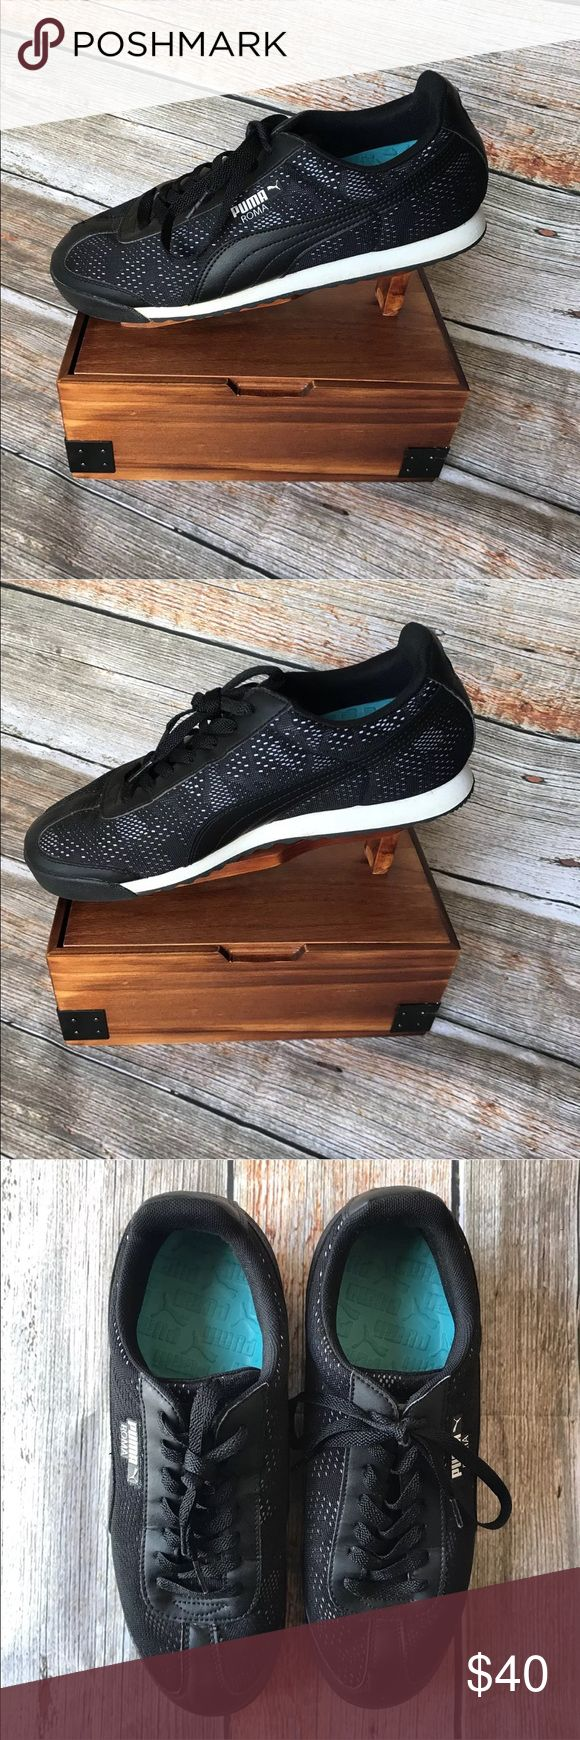 Retro style Men's PUMA SNEAKERS! Clean! Black Size 10 Retro style Inserts included Clean! Mens!  Smoke/Pet free home Puma Shoes Sneakers